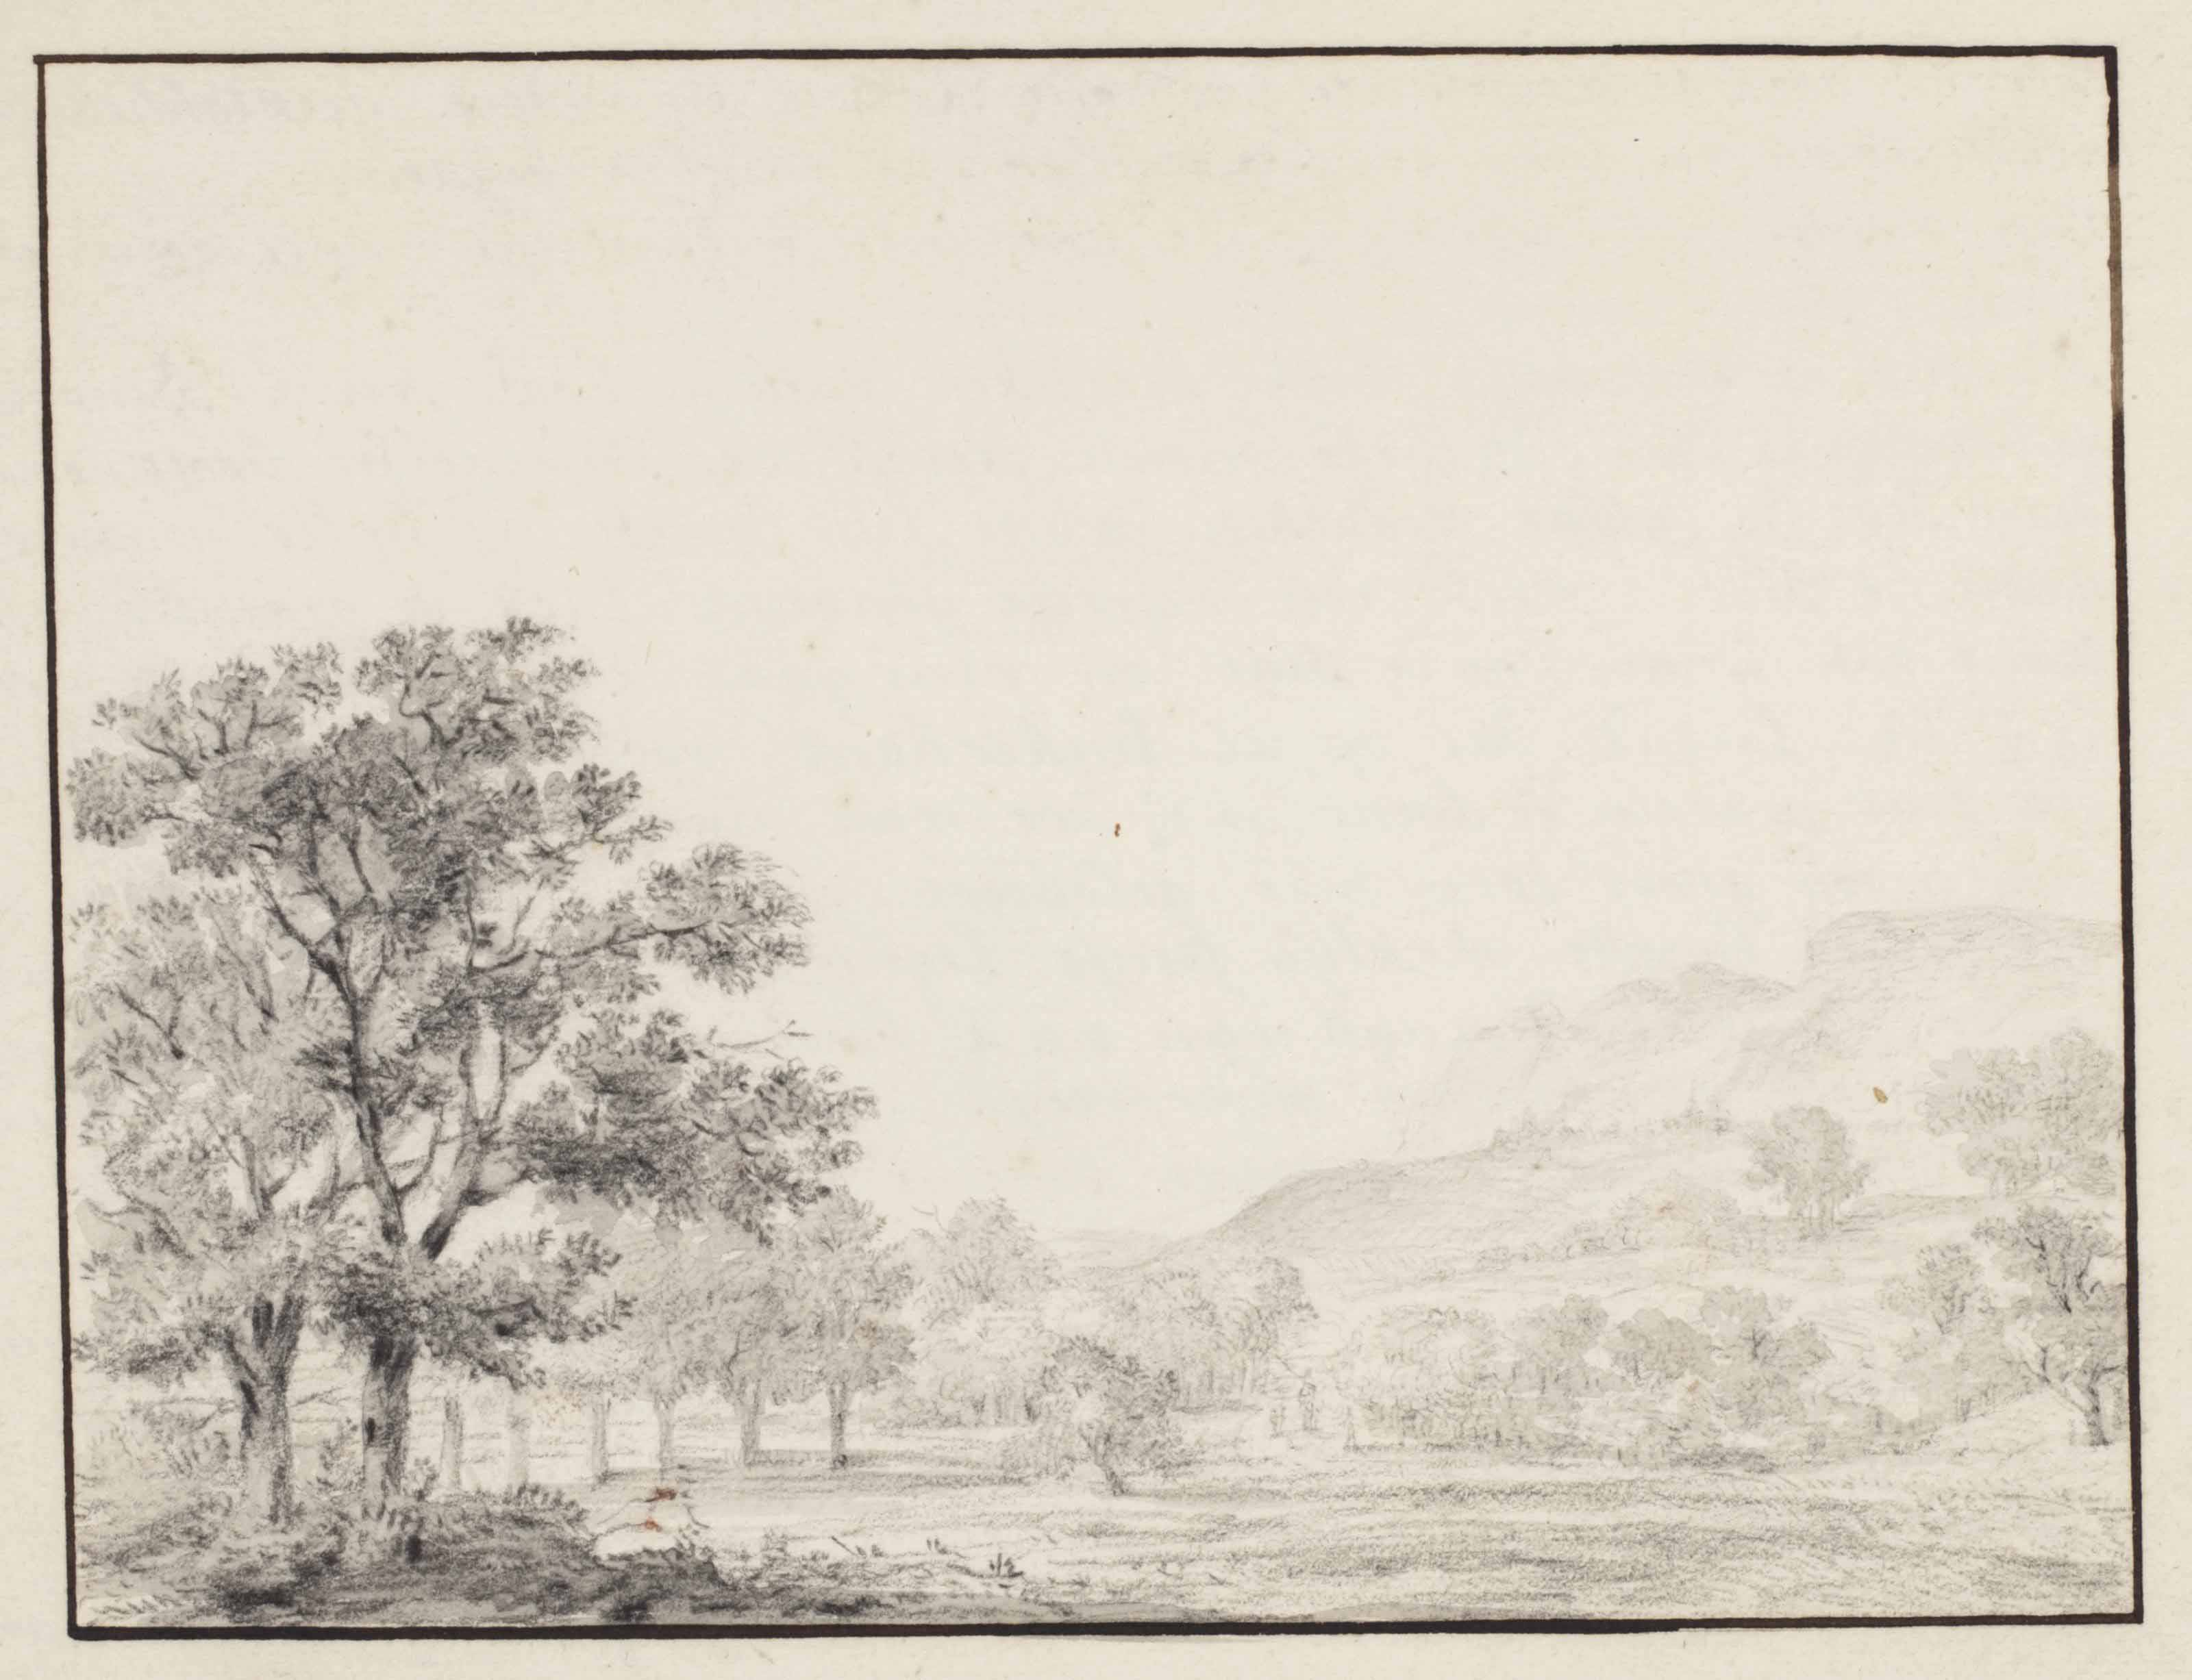 A sketchbook page: An extensive hilly landscape with trees near Nantua, eastern France